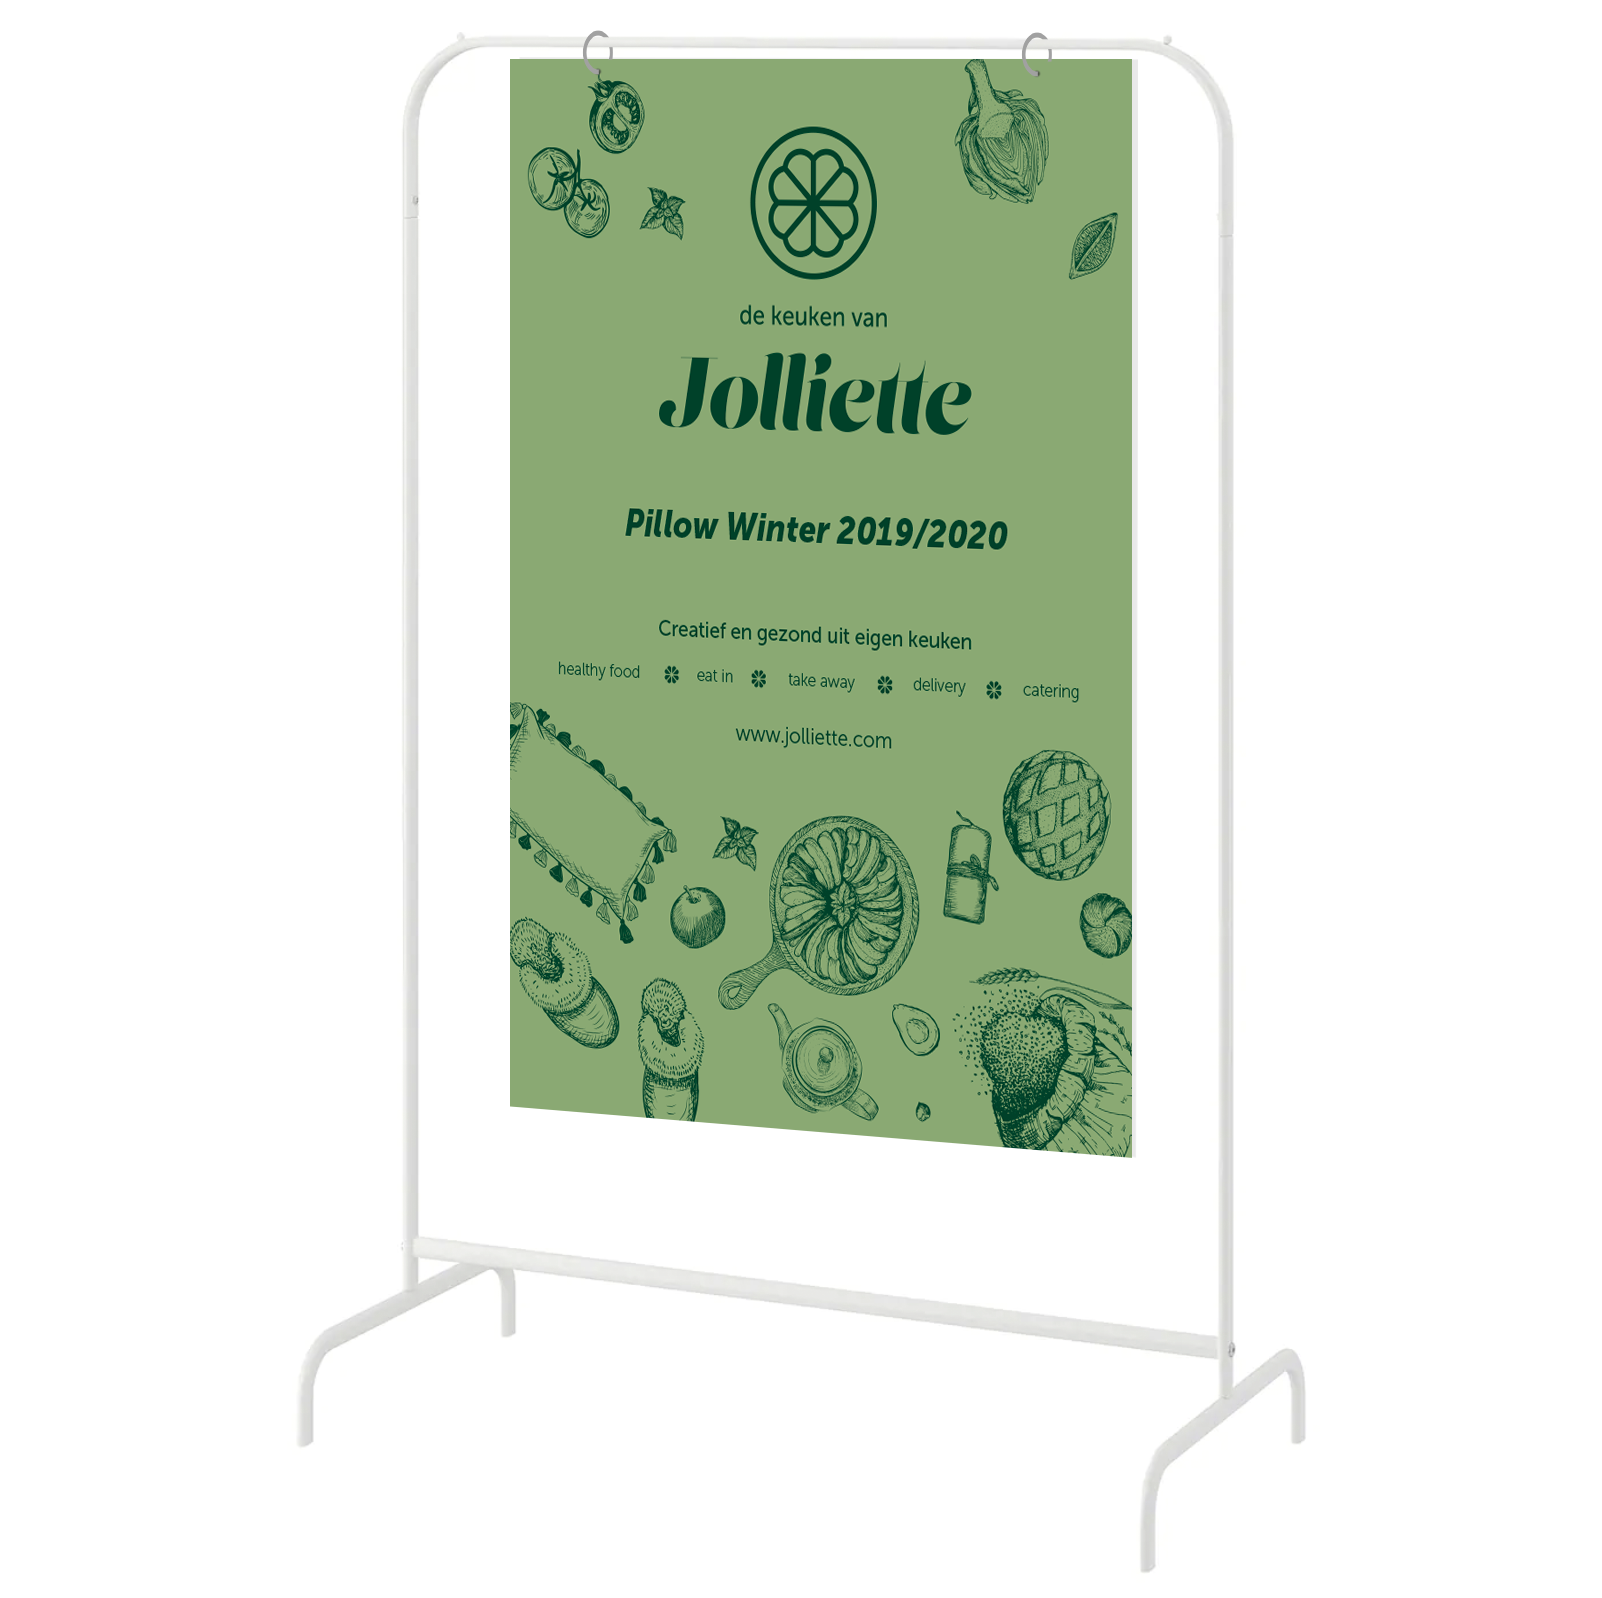 Jolliette pop-up healthy food shop branding board design